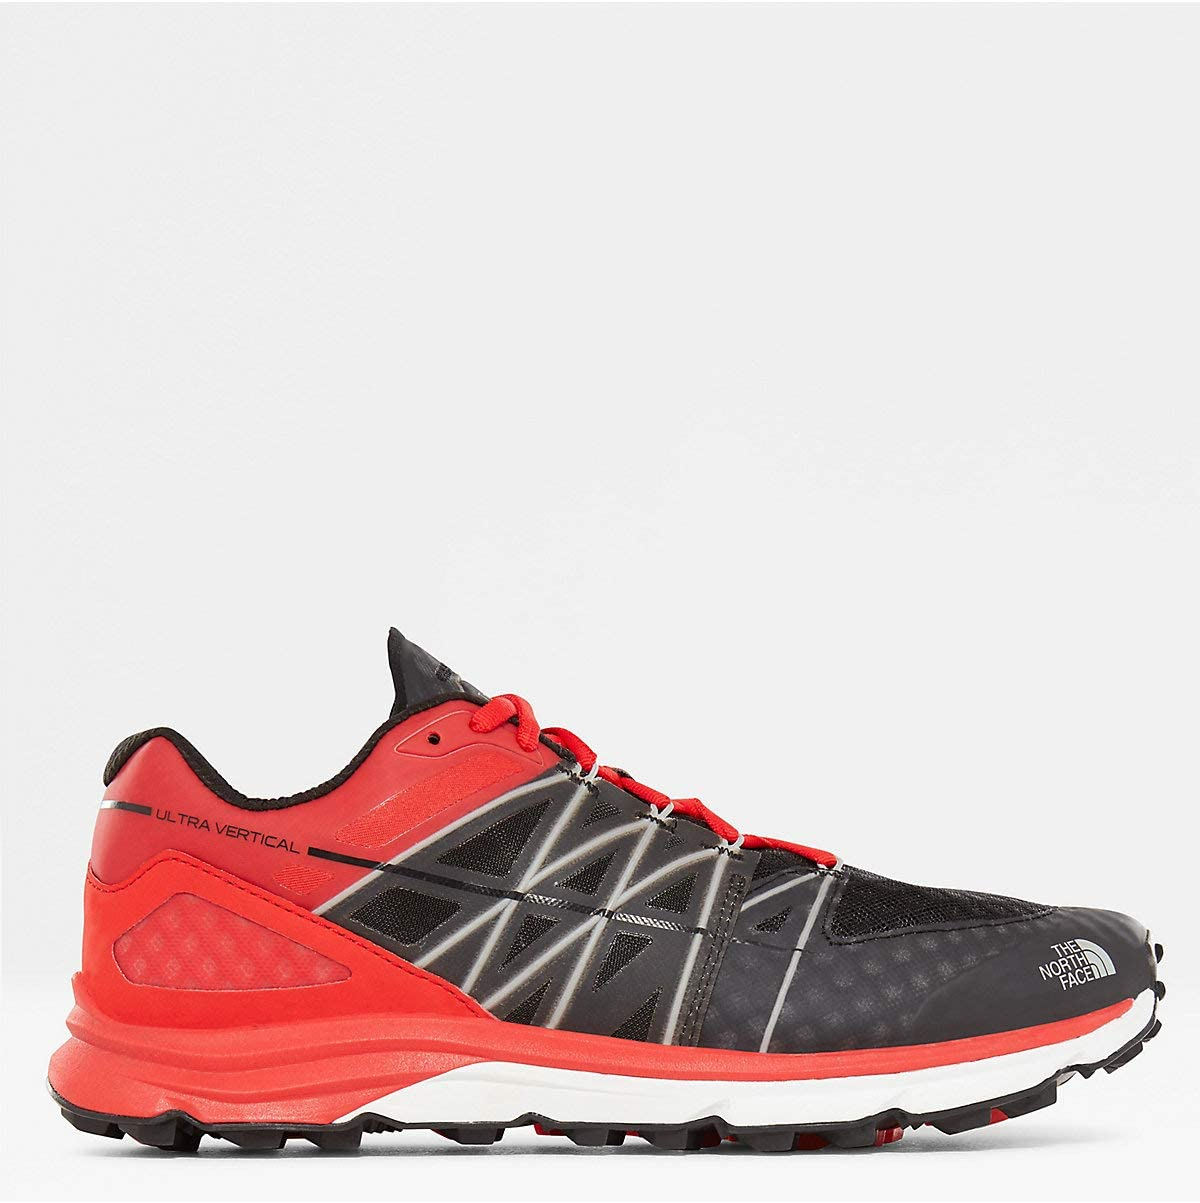 The North Face M Ultra Vertical -Fall 2018-(T92VVCWU5) - Fiery Red/TNF Black - 14: Amazon.es: Deportes y aire libre